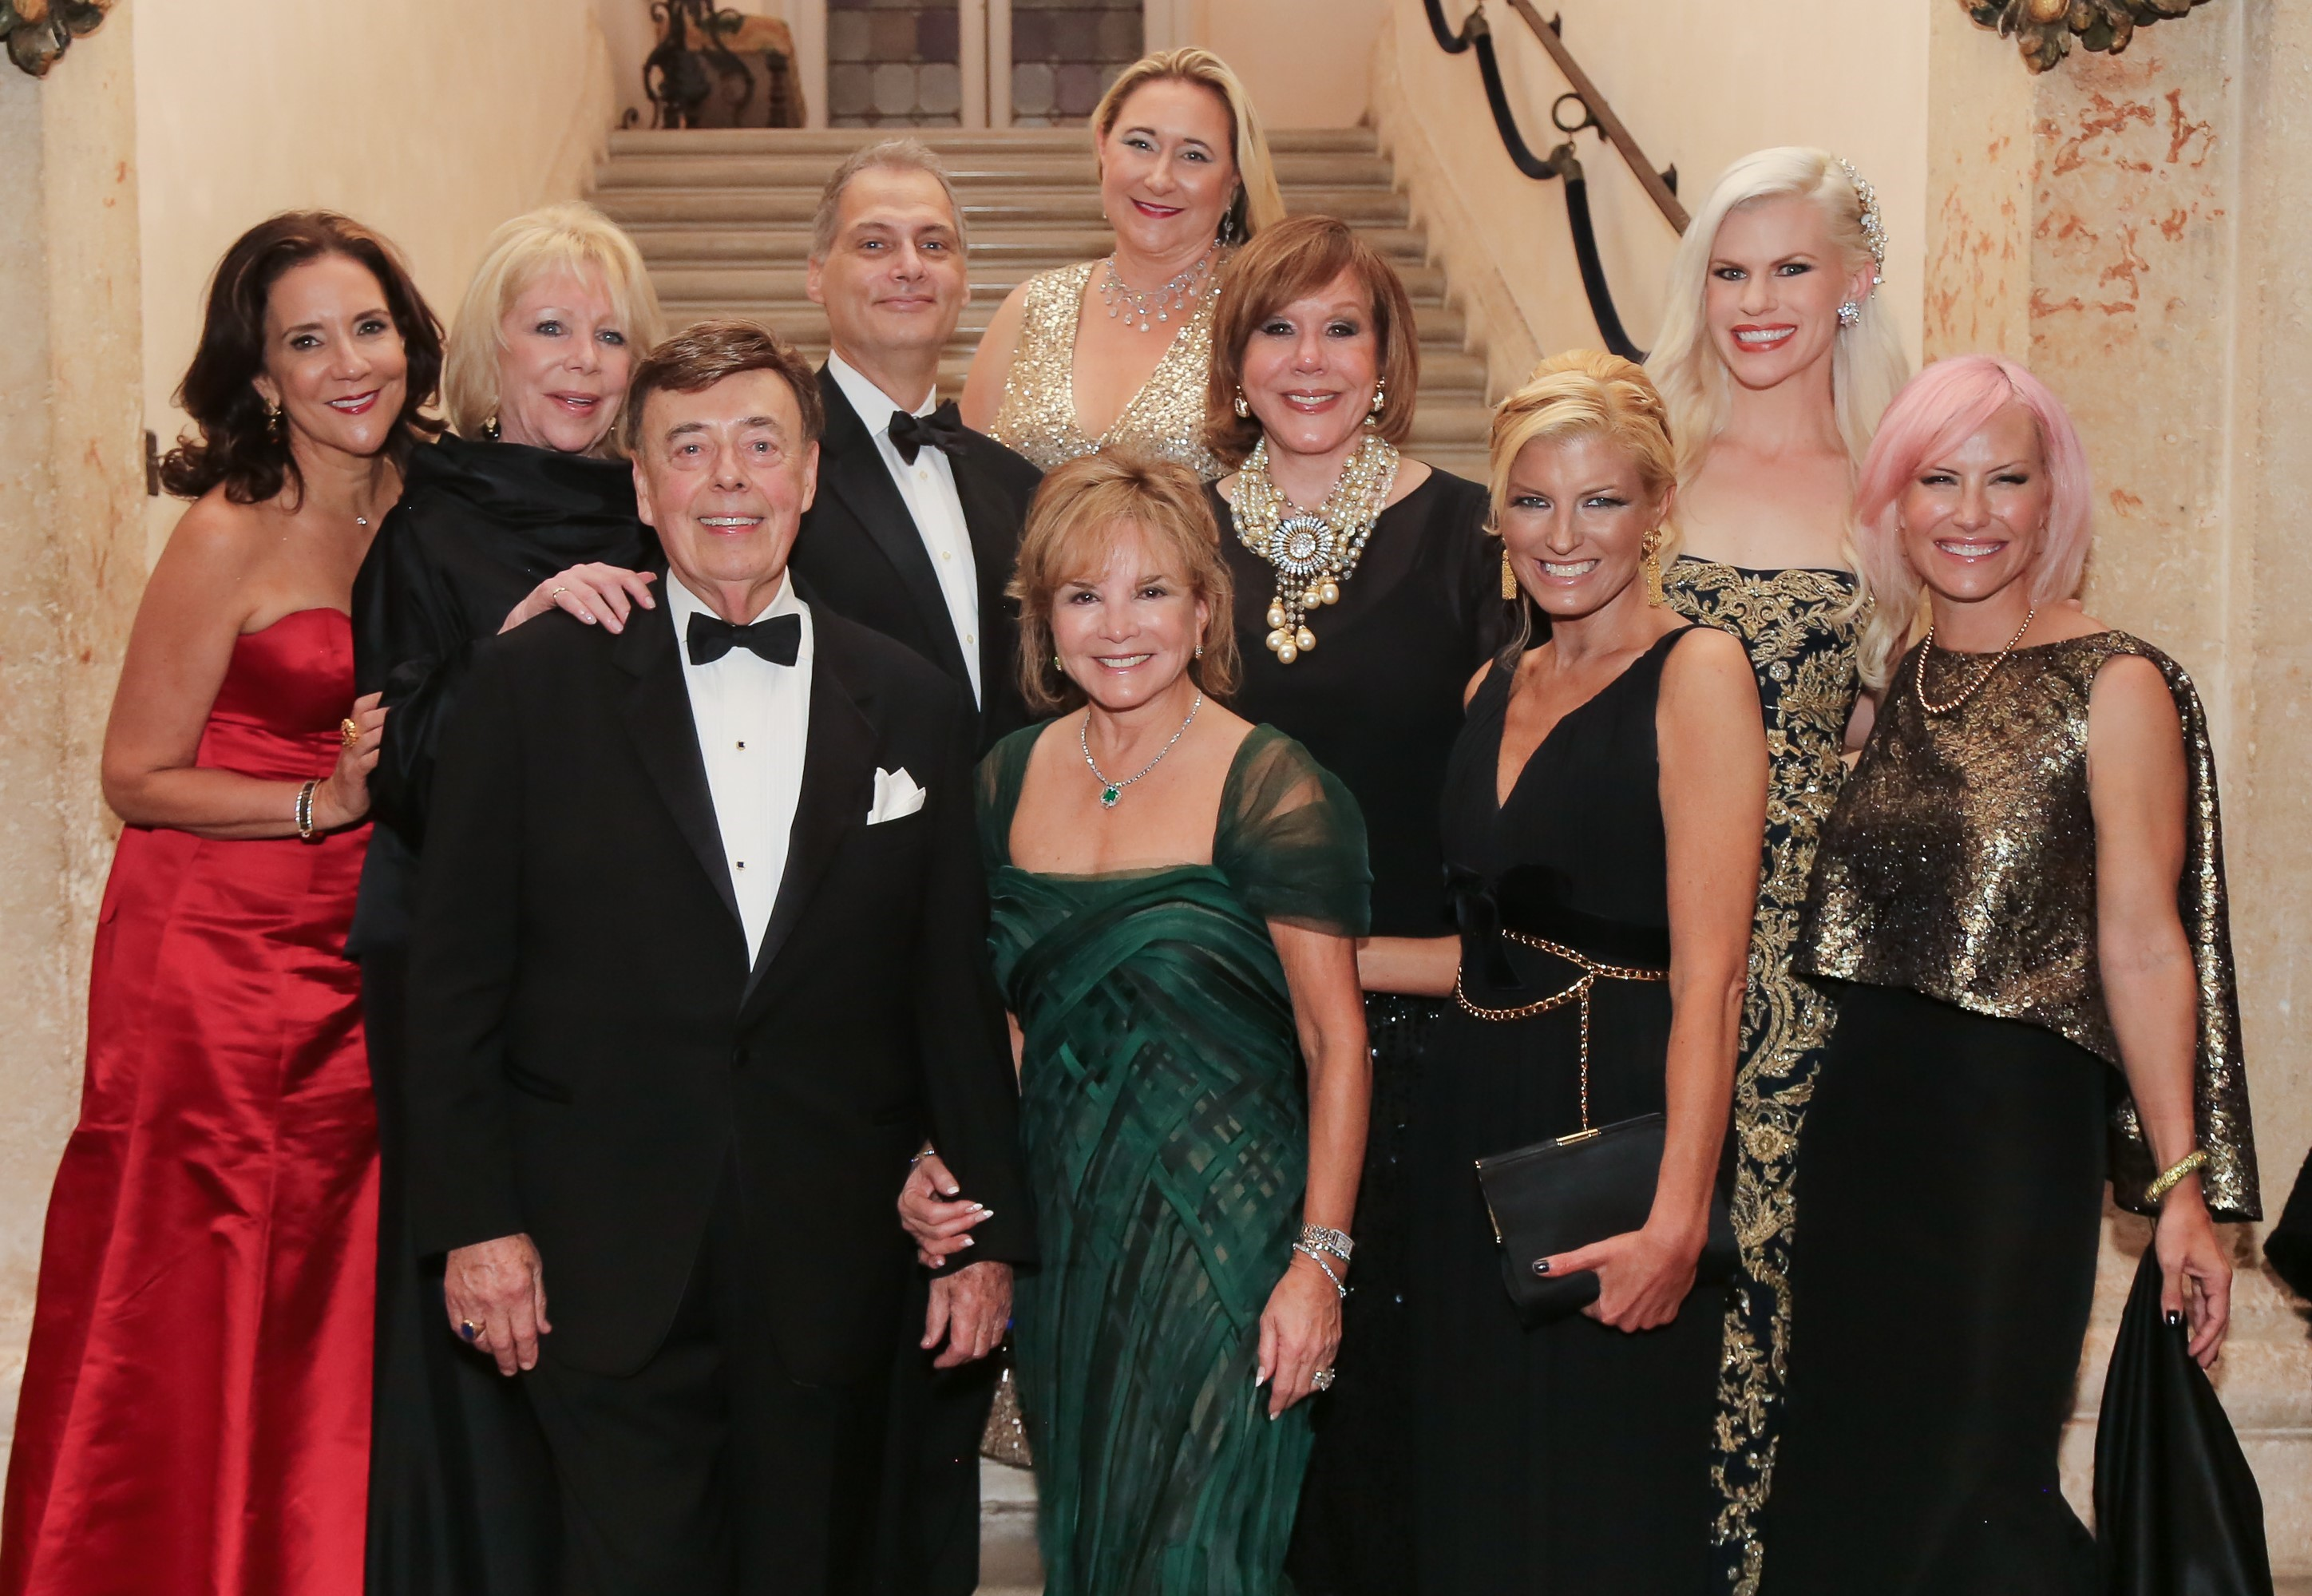 THE 59th ANNUAL VIZCAYA BALL